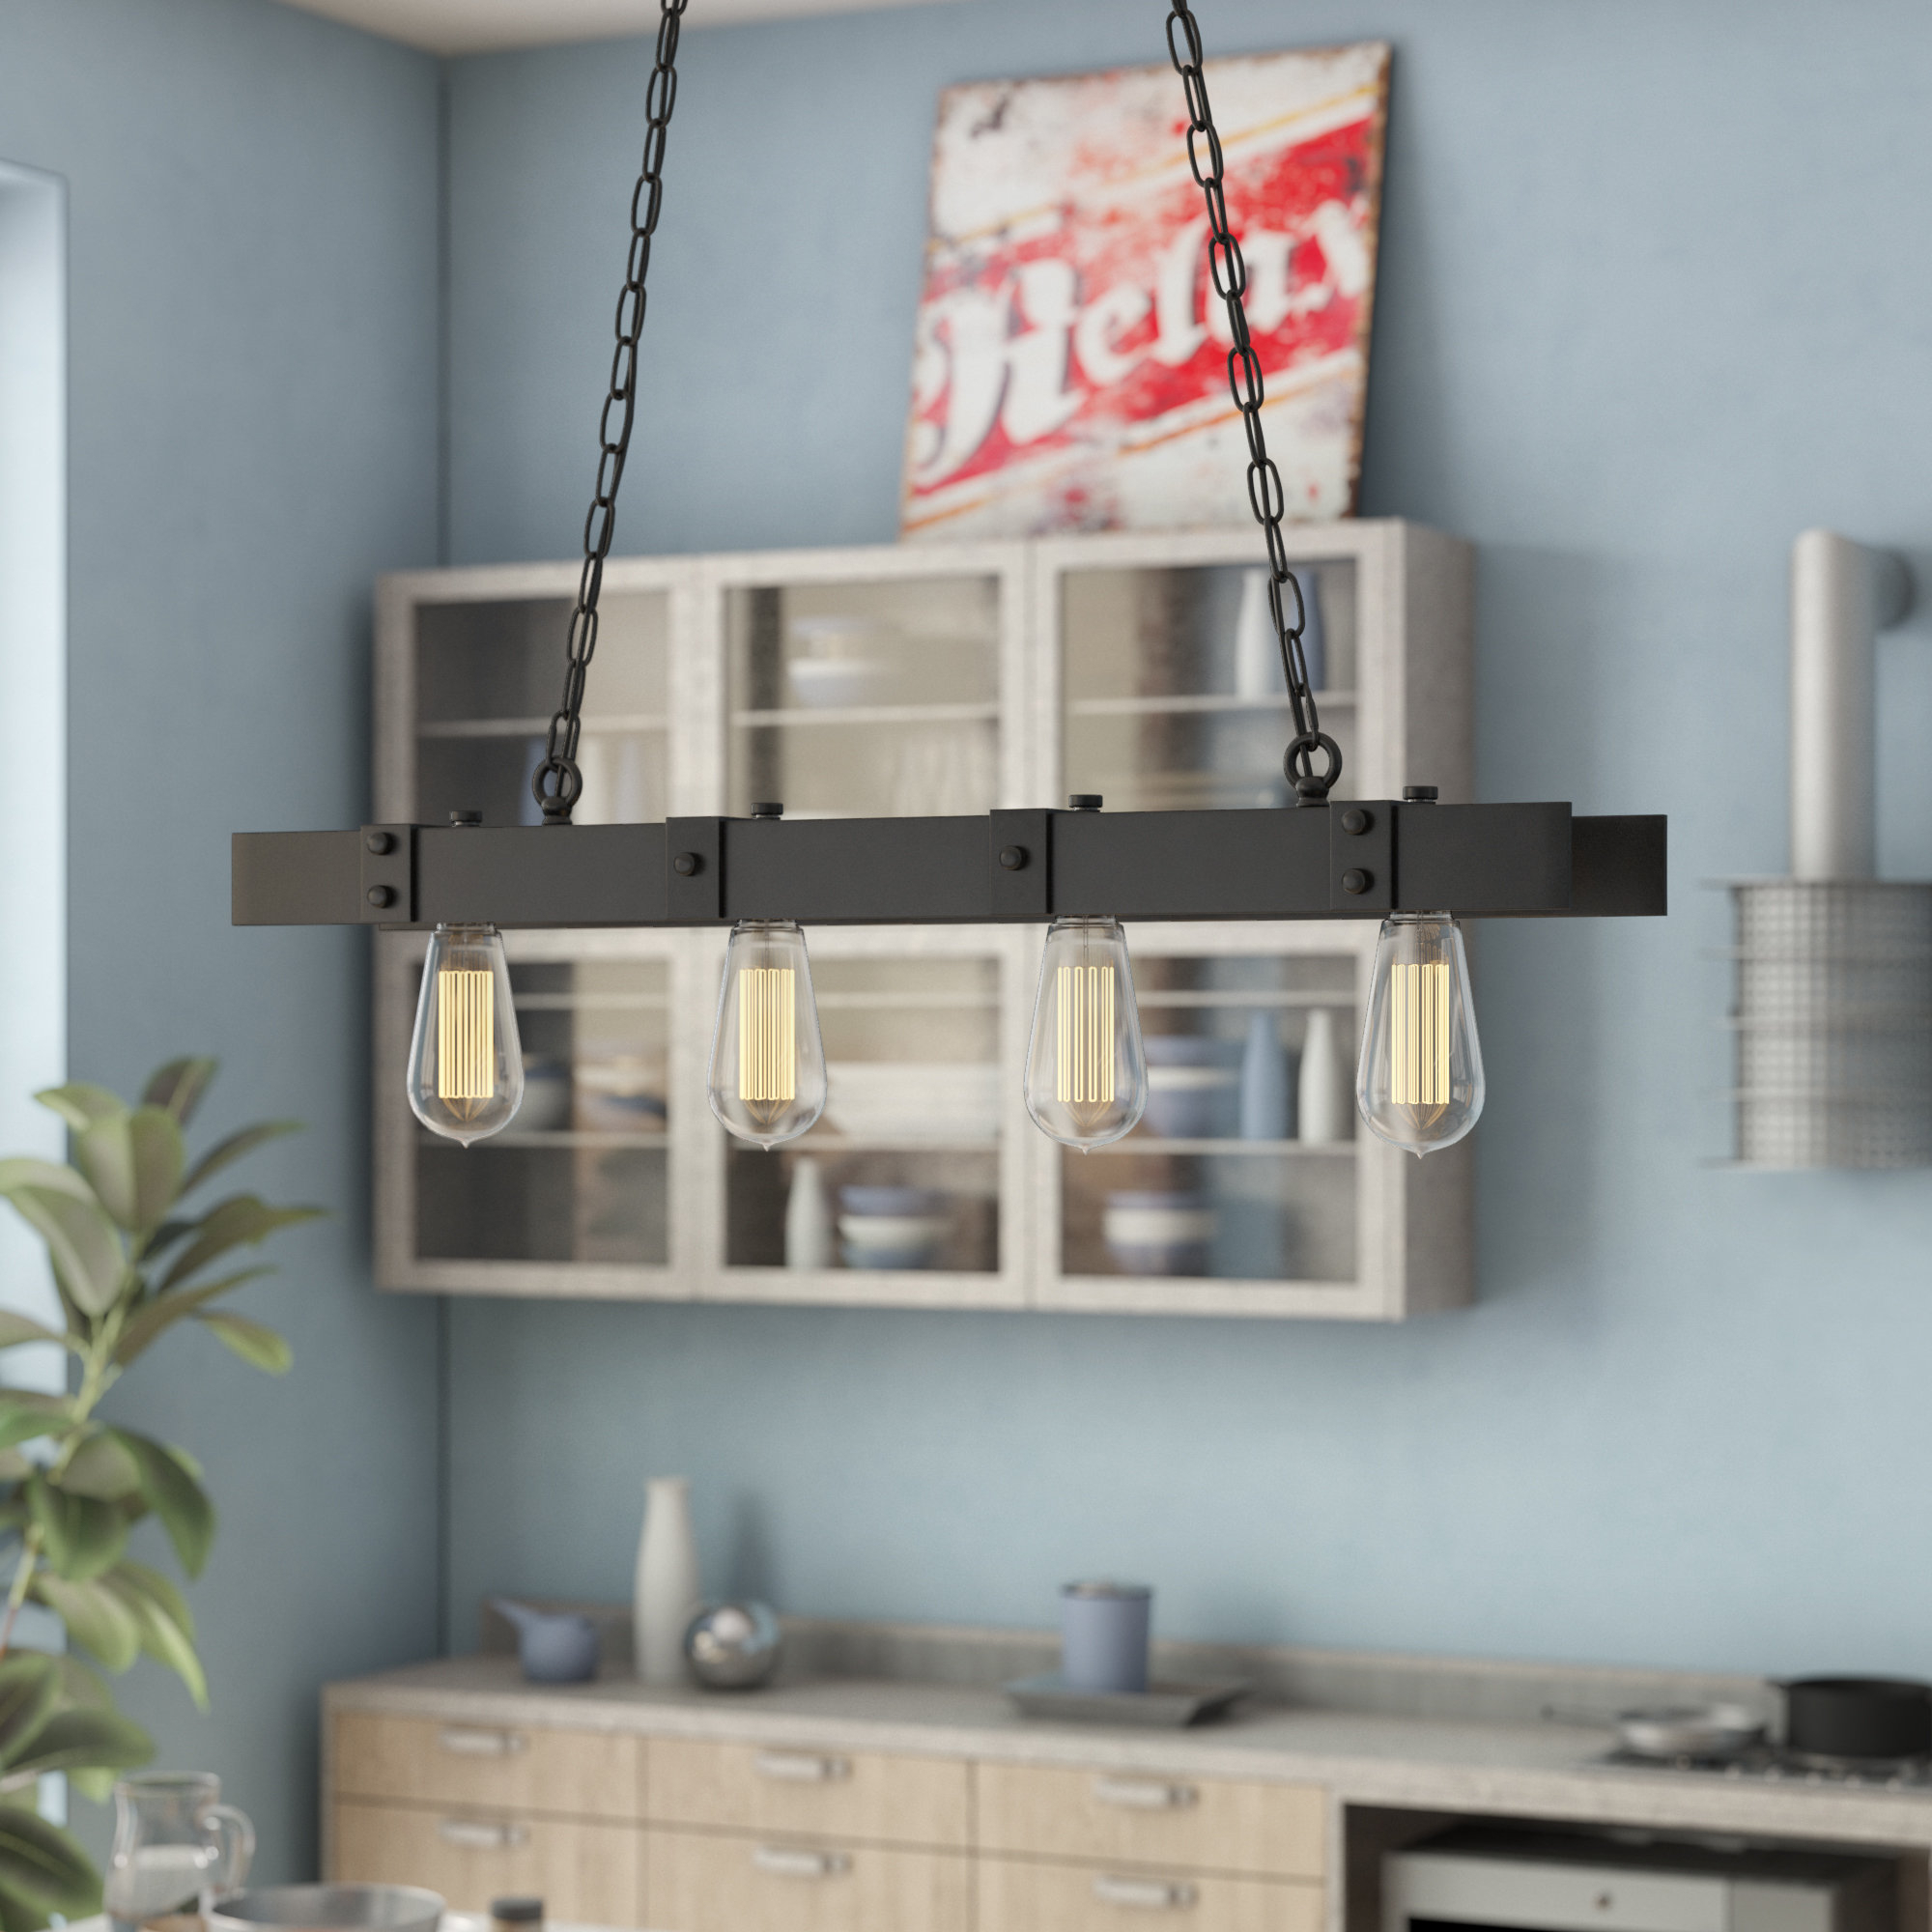 Kitchen Island Williston Forge Pendant Lighting You'll Love With Regard To Schutt 4 Light Kitchen Island Pendants (View 11 of 30)